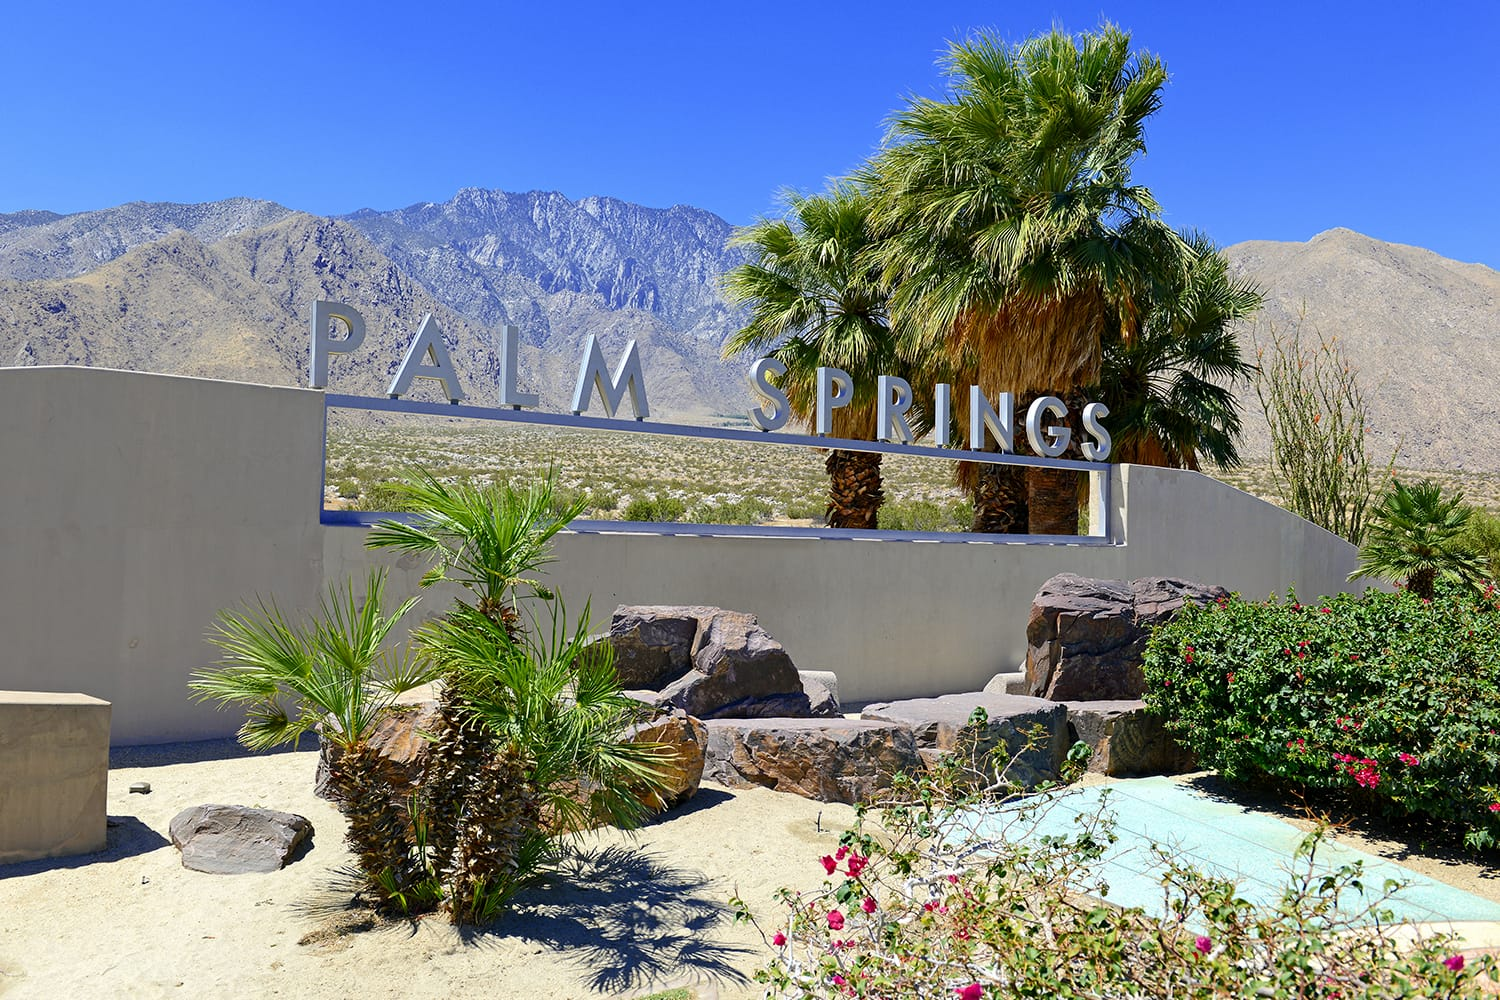 Palm Springs sign with desert background and backdrop of San Jacinto Mountain, California, USA